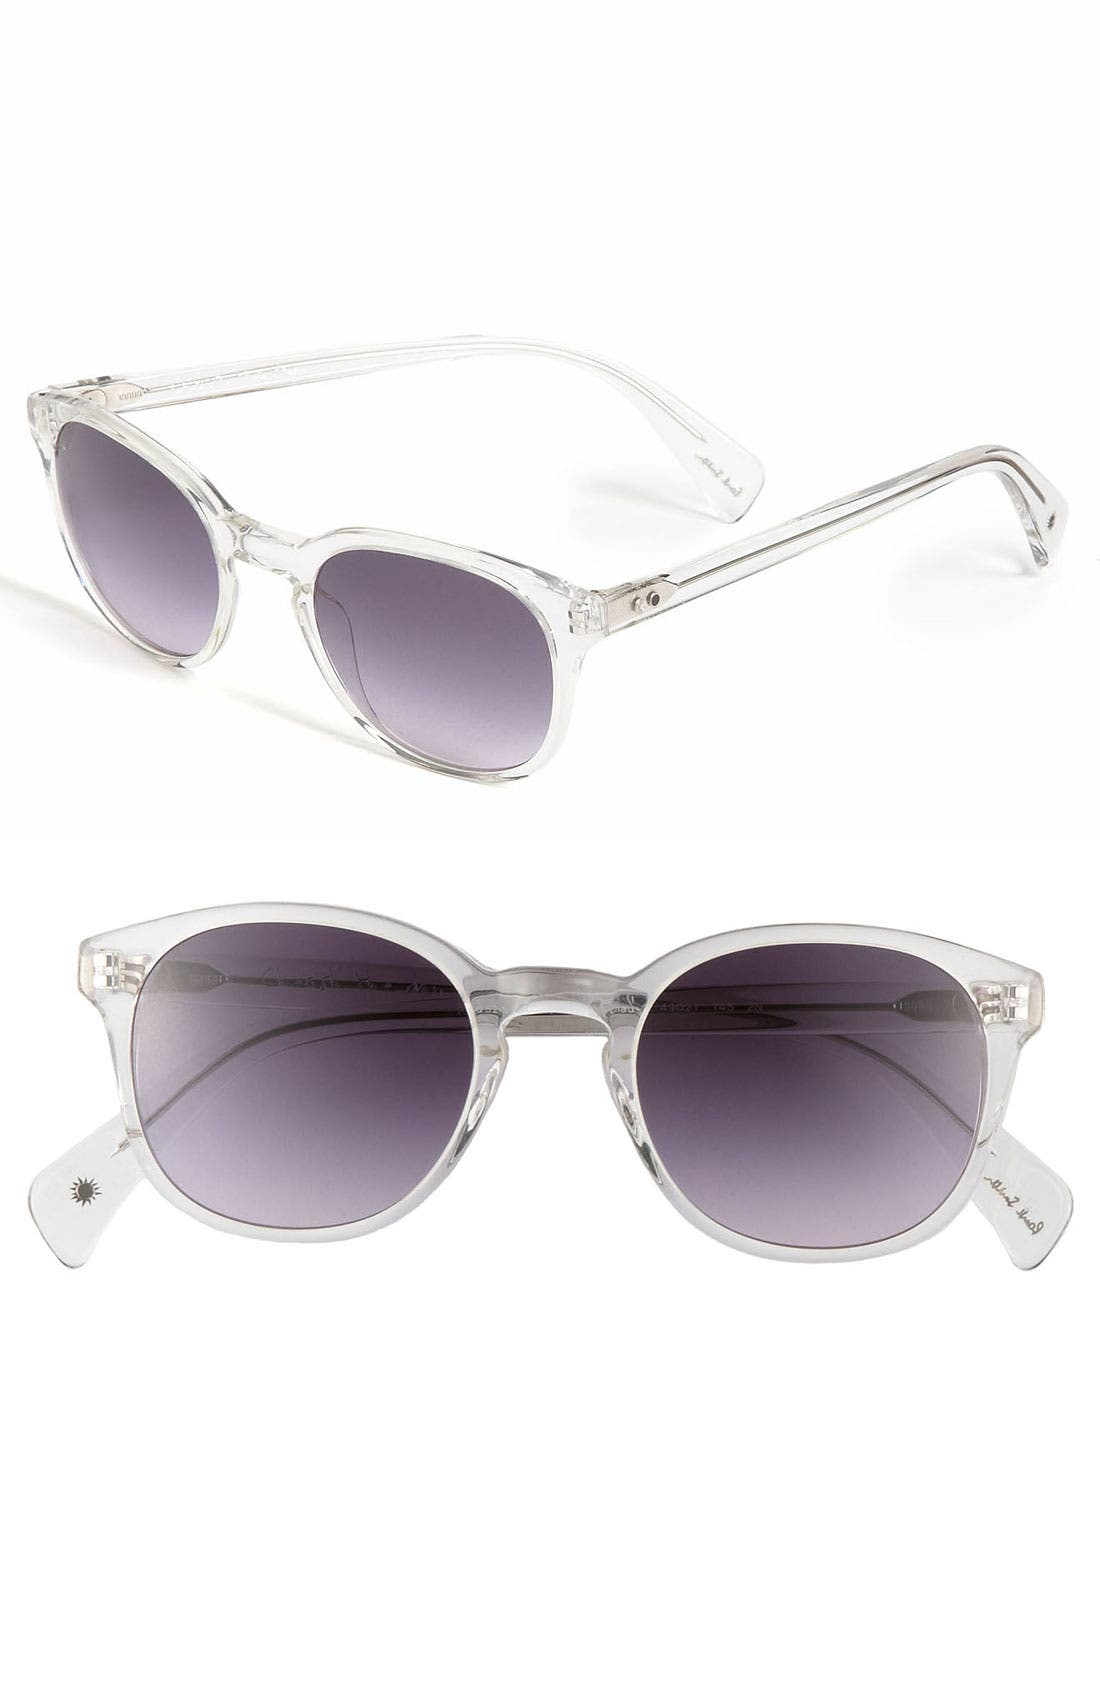 Main Image - Paul Smith 'Chaucer' 49mm Sunglasses